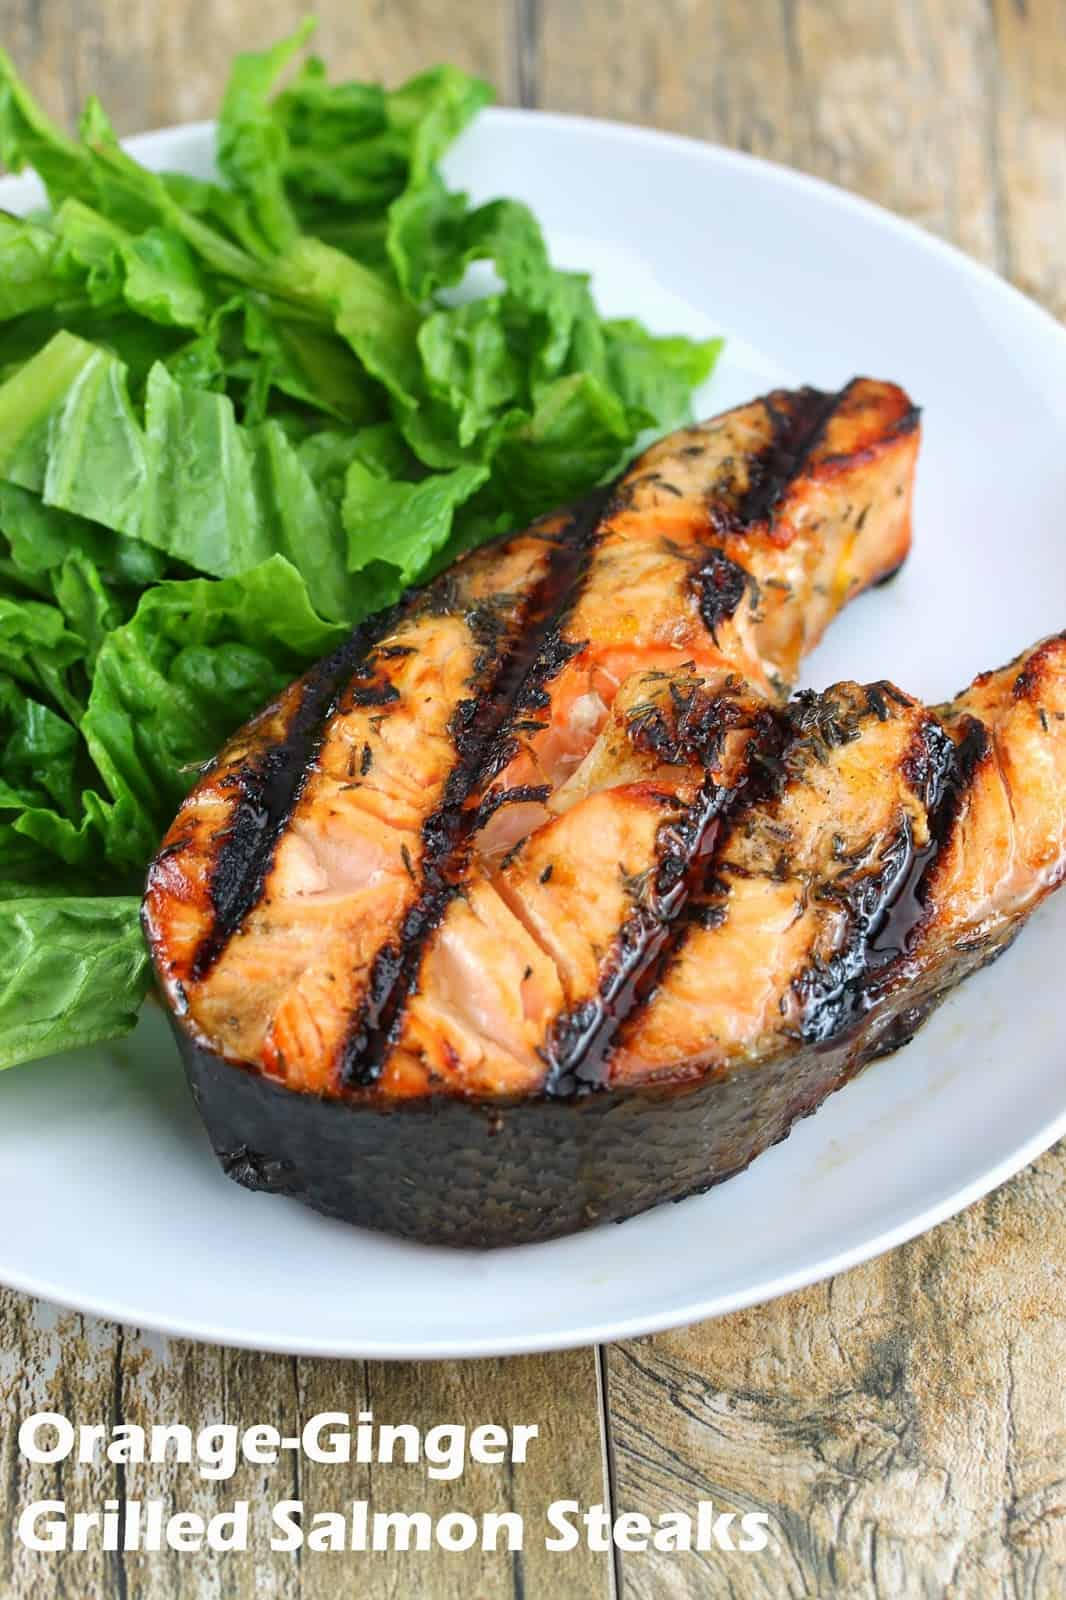 Orange ginger grilled salmon steaks on a white plate with a salad